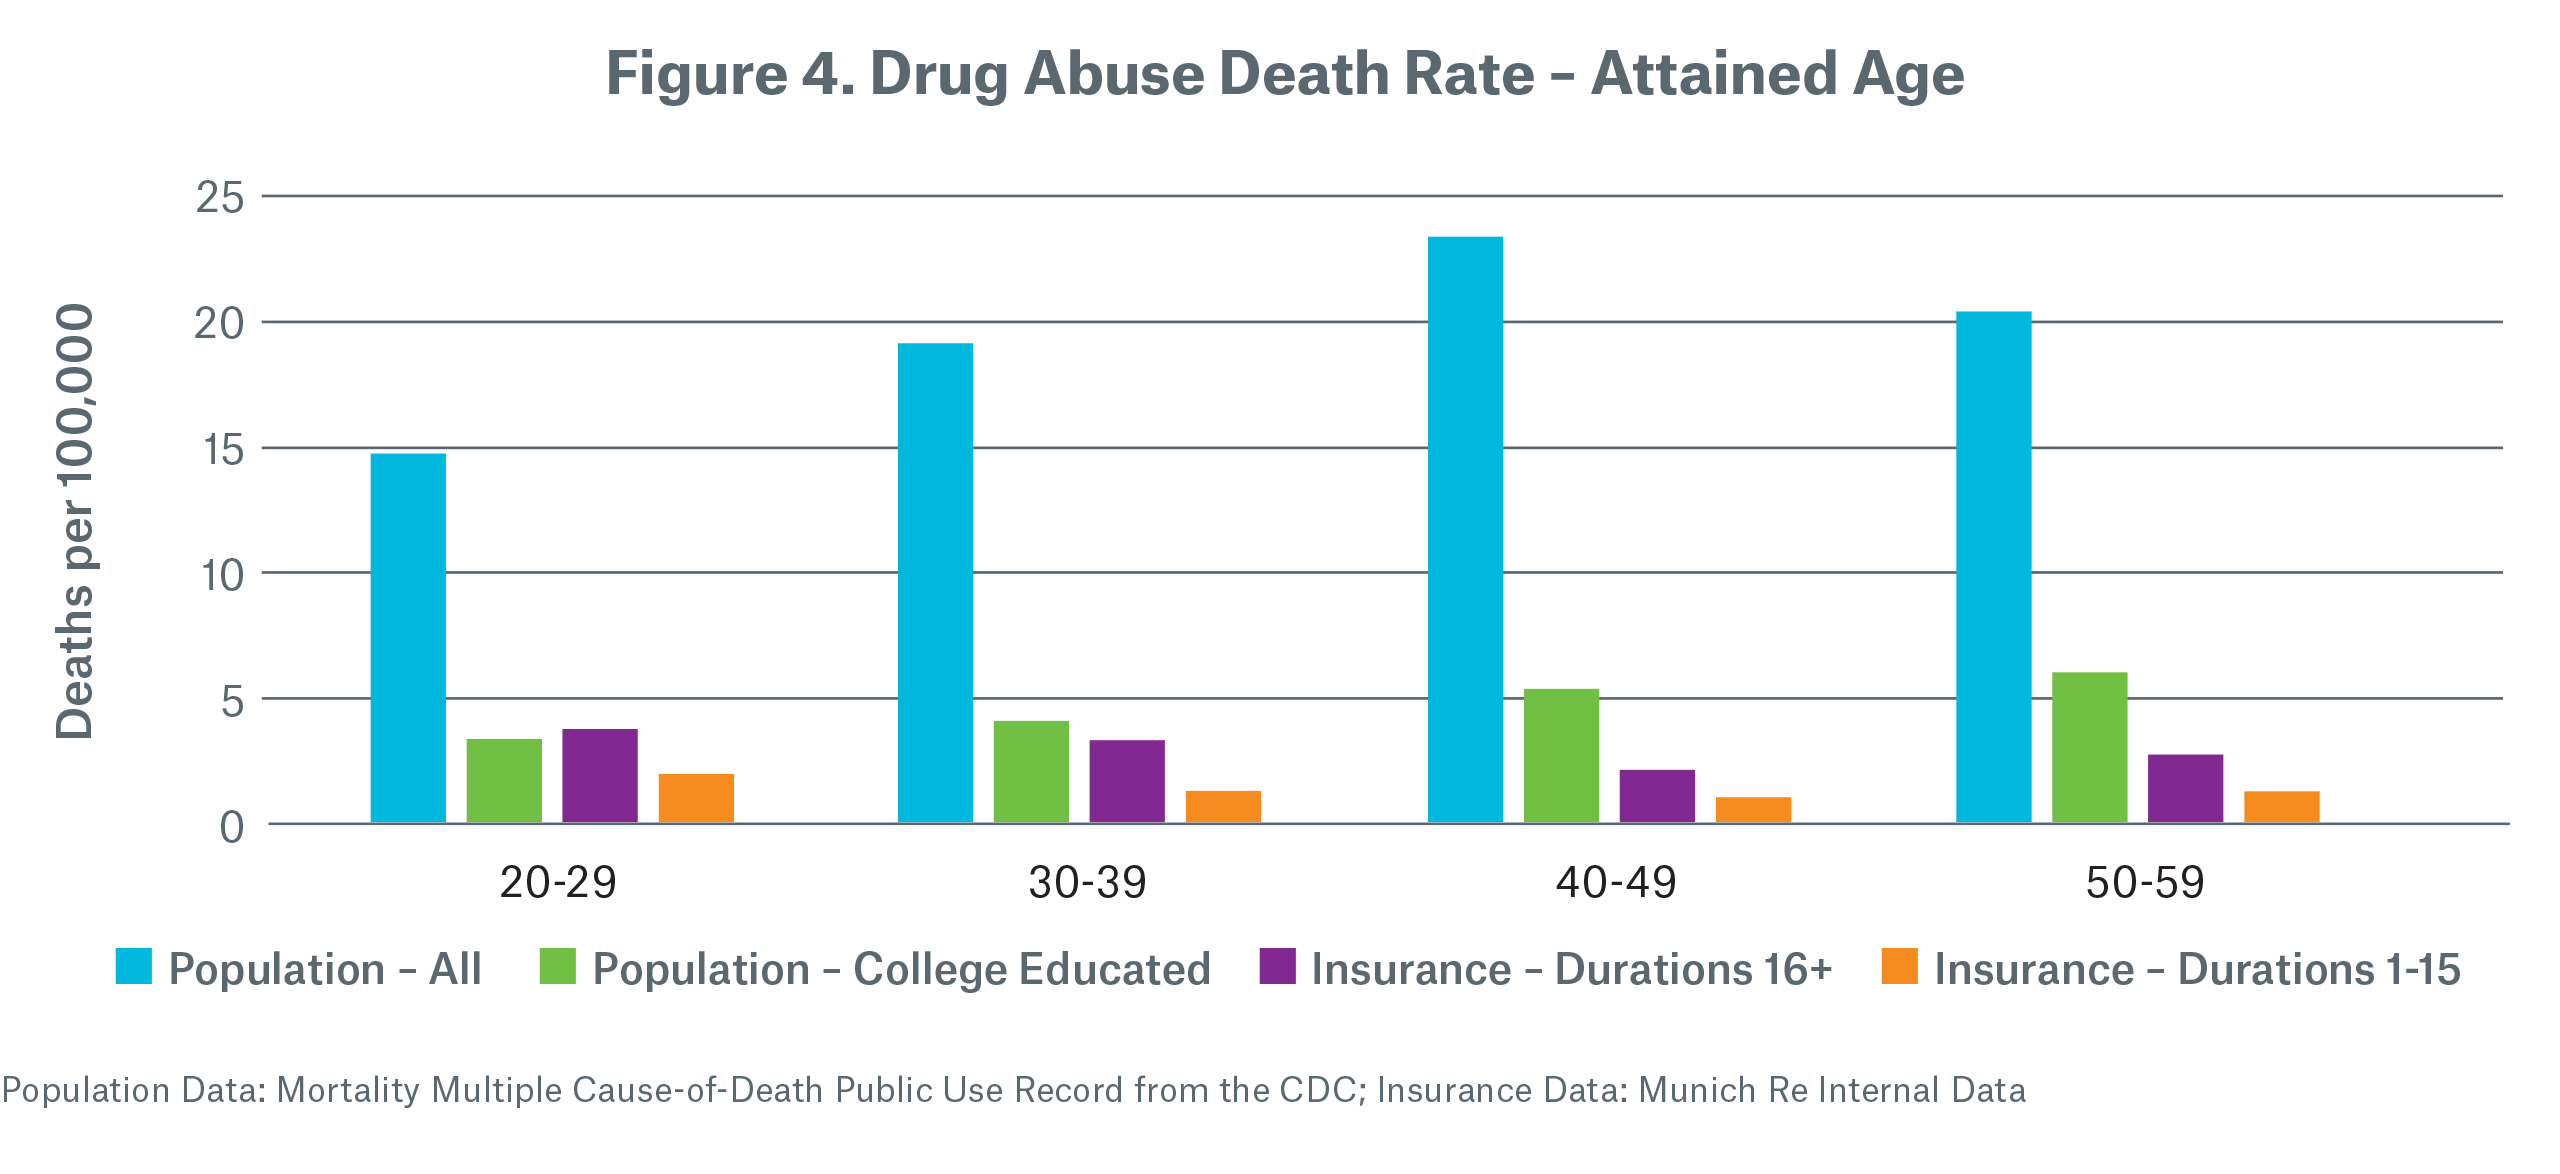 Drug Abuse Death Rate - Attained Age Figure